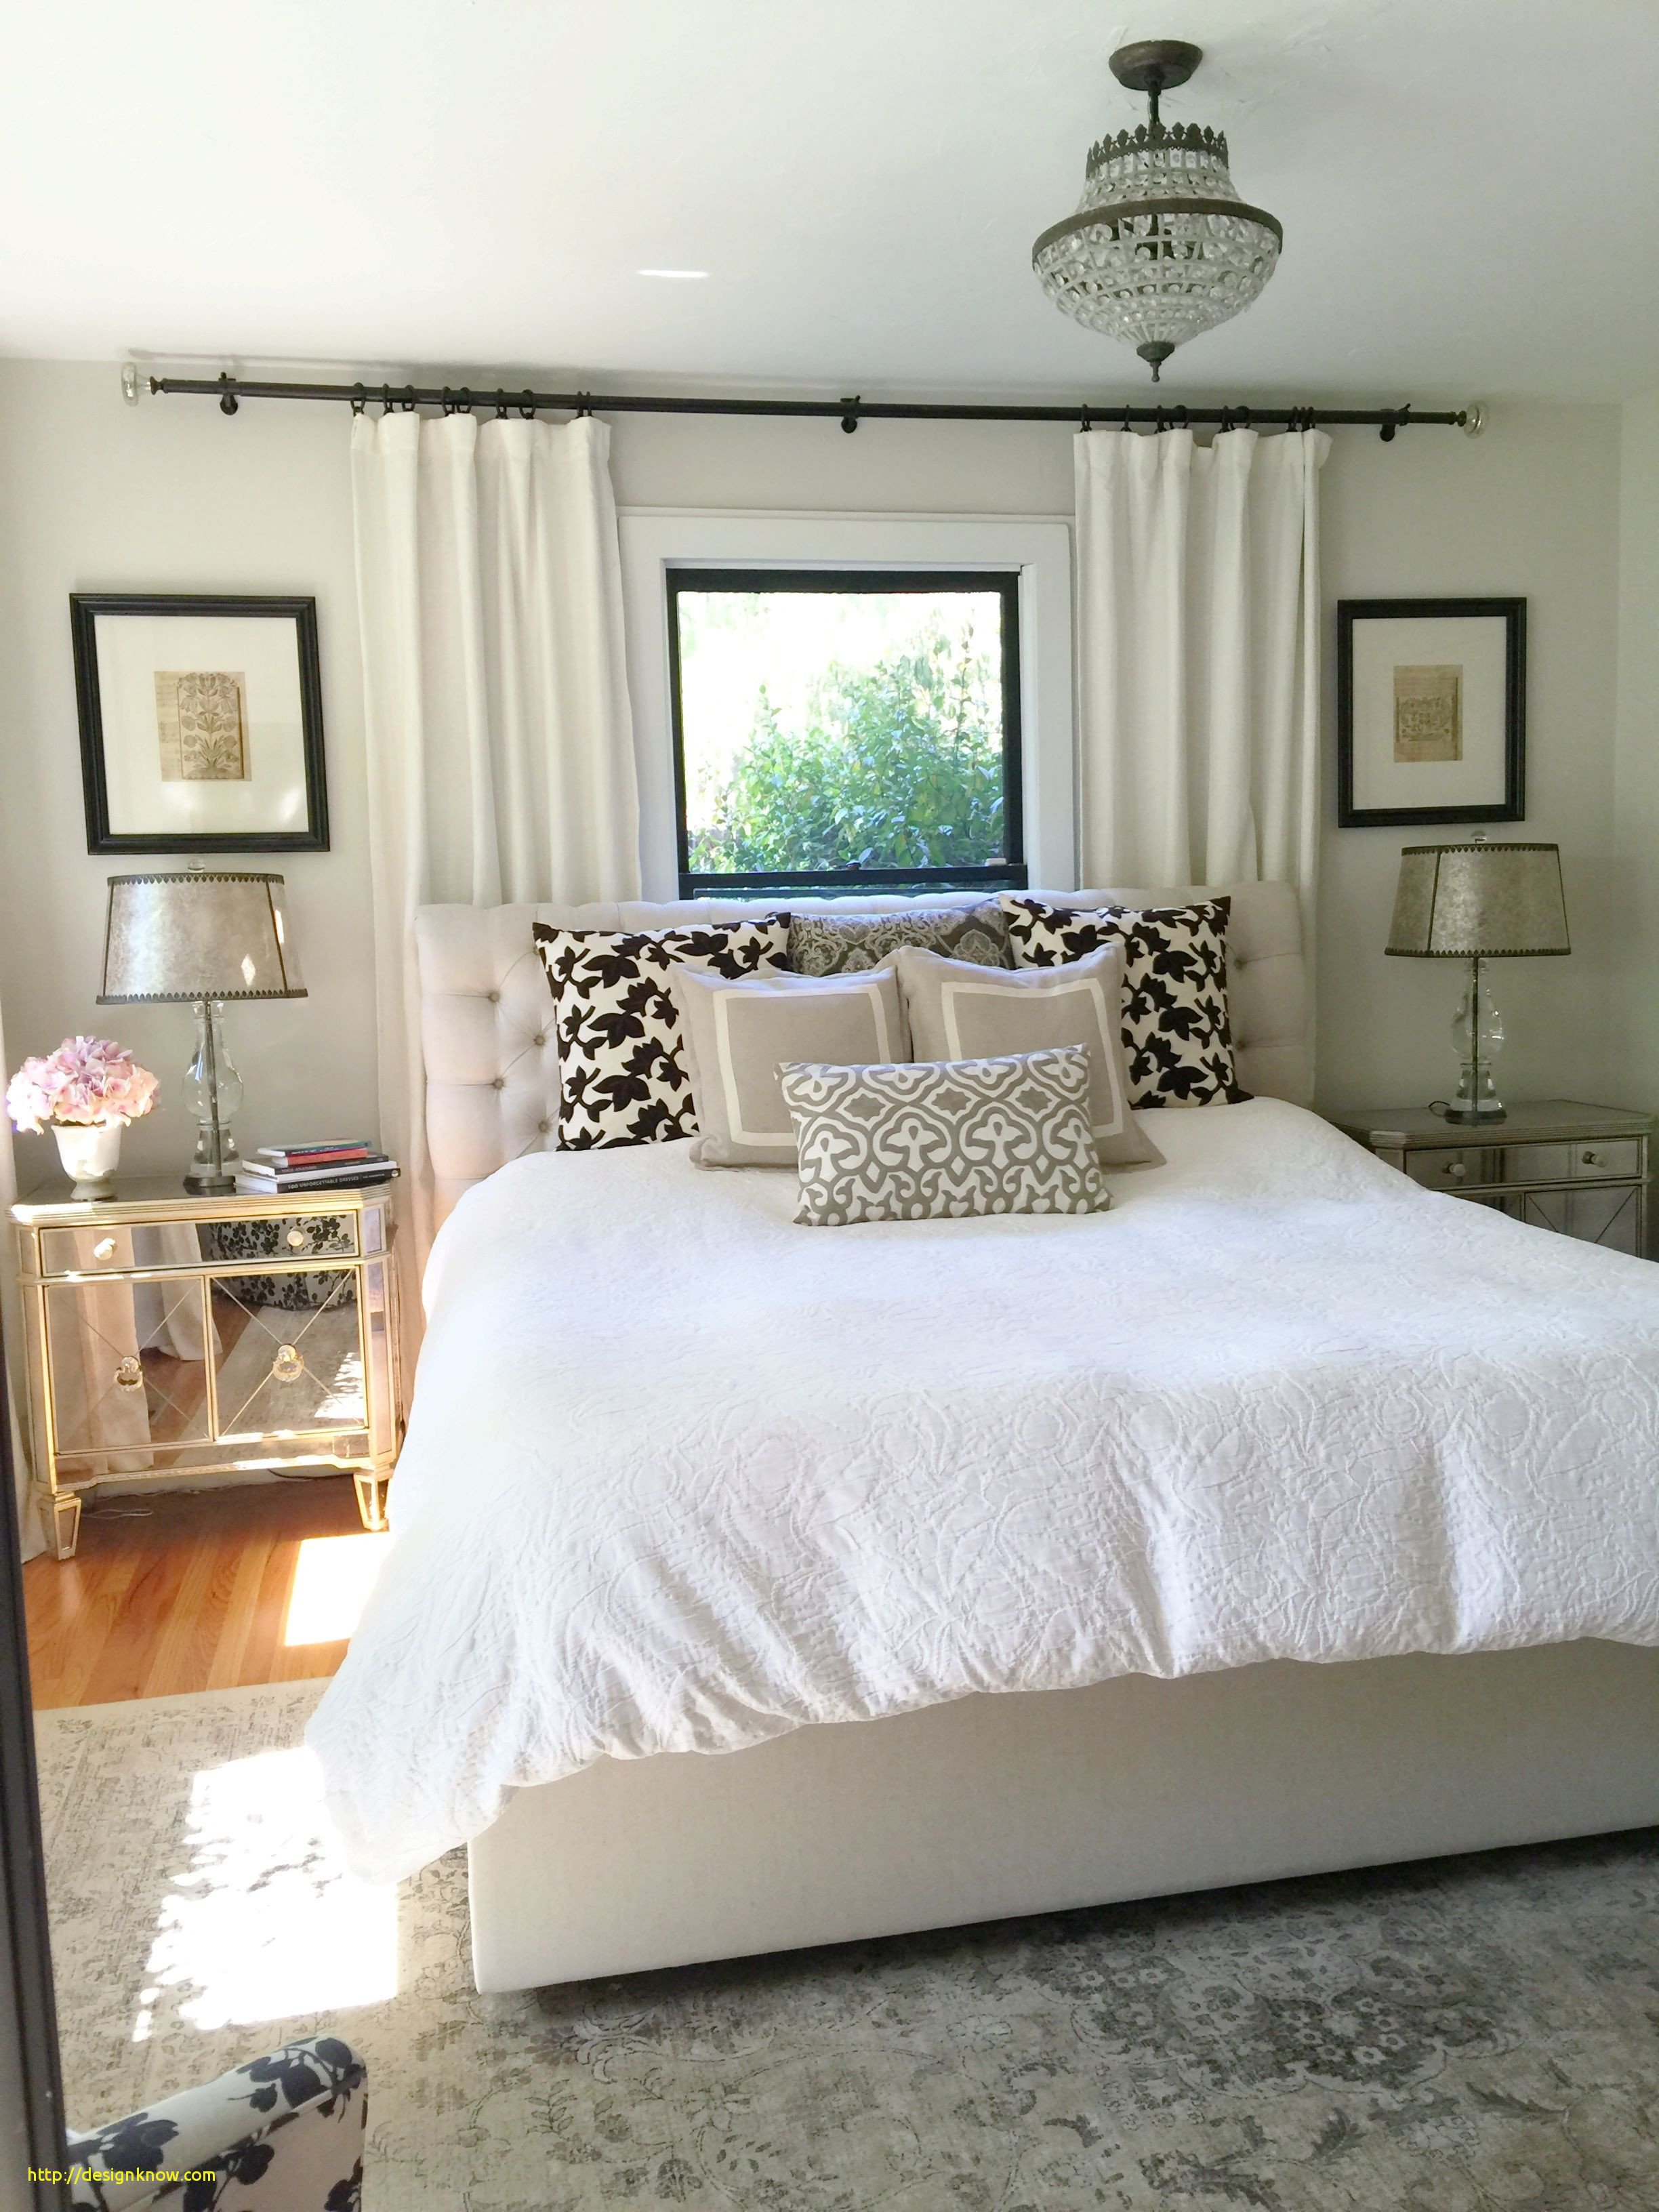 King Size Bedroom Ideas Luxury Unique Interior Design for Small Size Bedroom